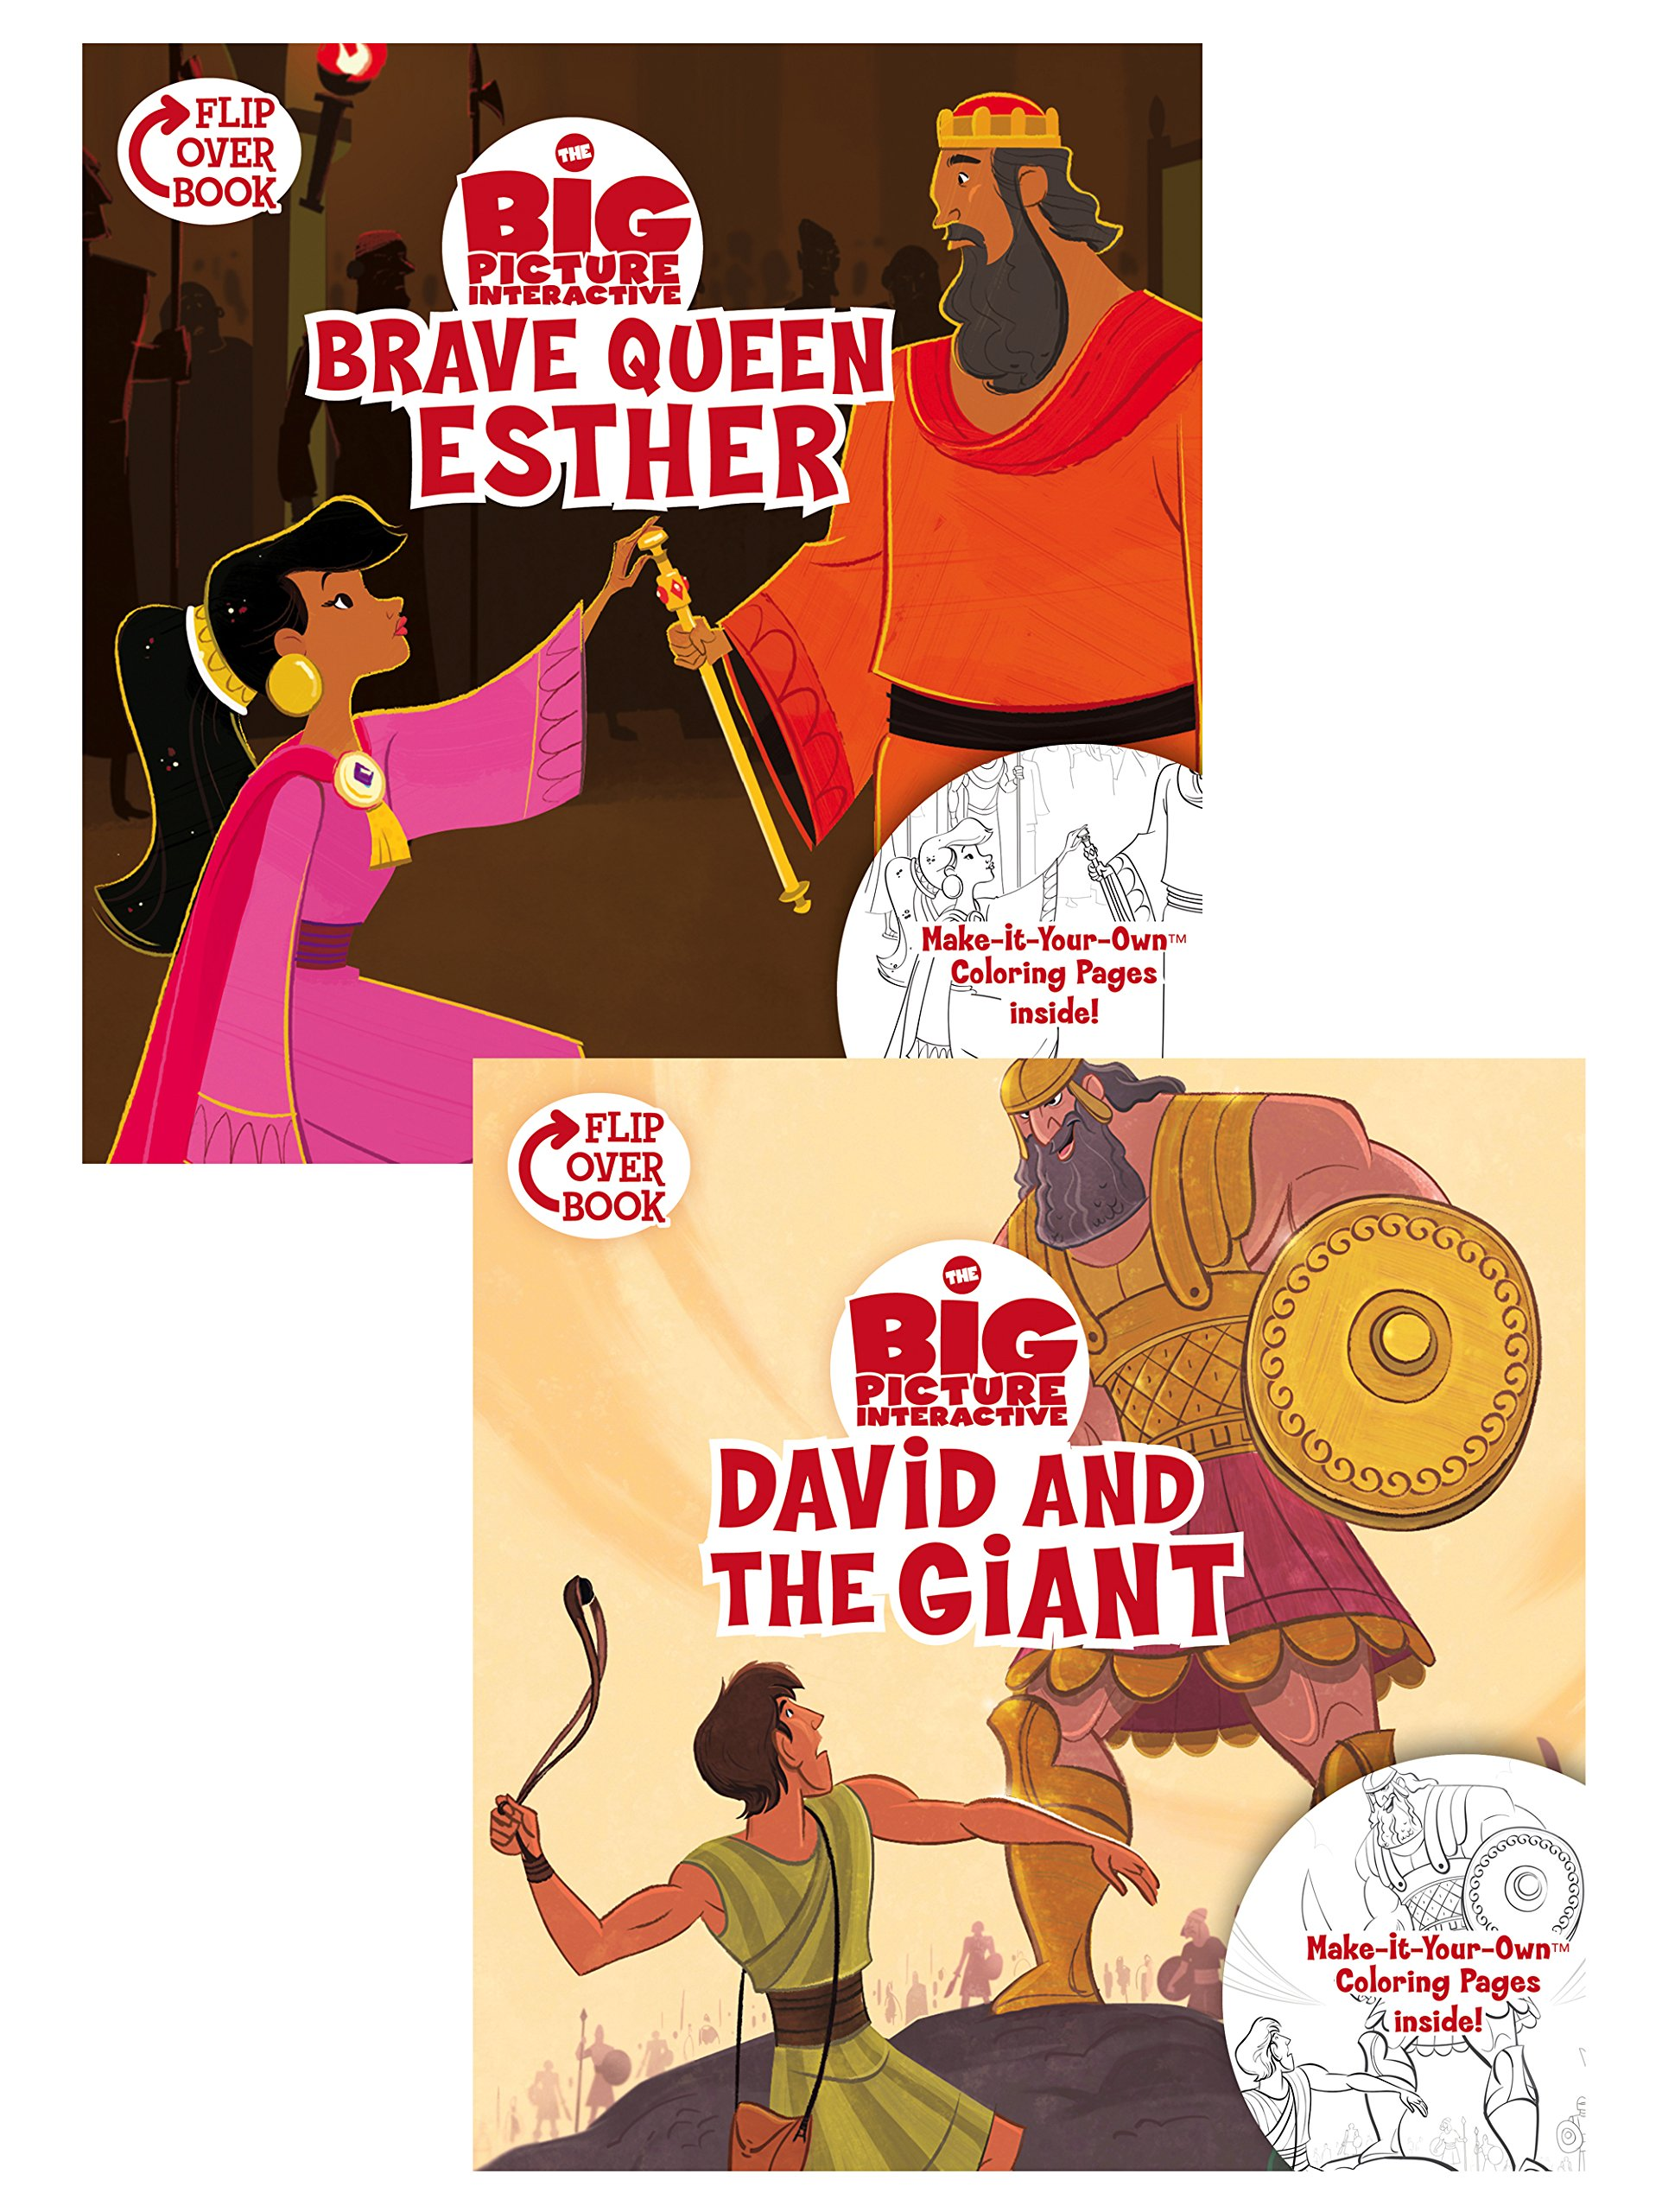 Read Online Brave Queen Esther/David and the Giant Flip-Over Book (The Big Picture Interactive / The Gospel Project) PDF